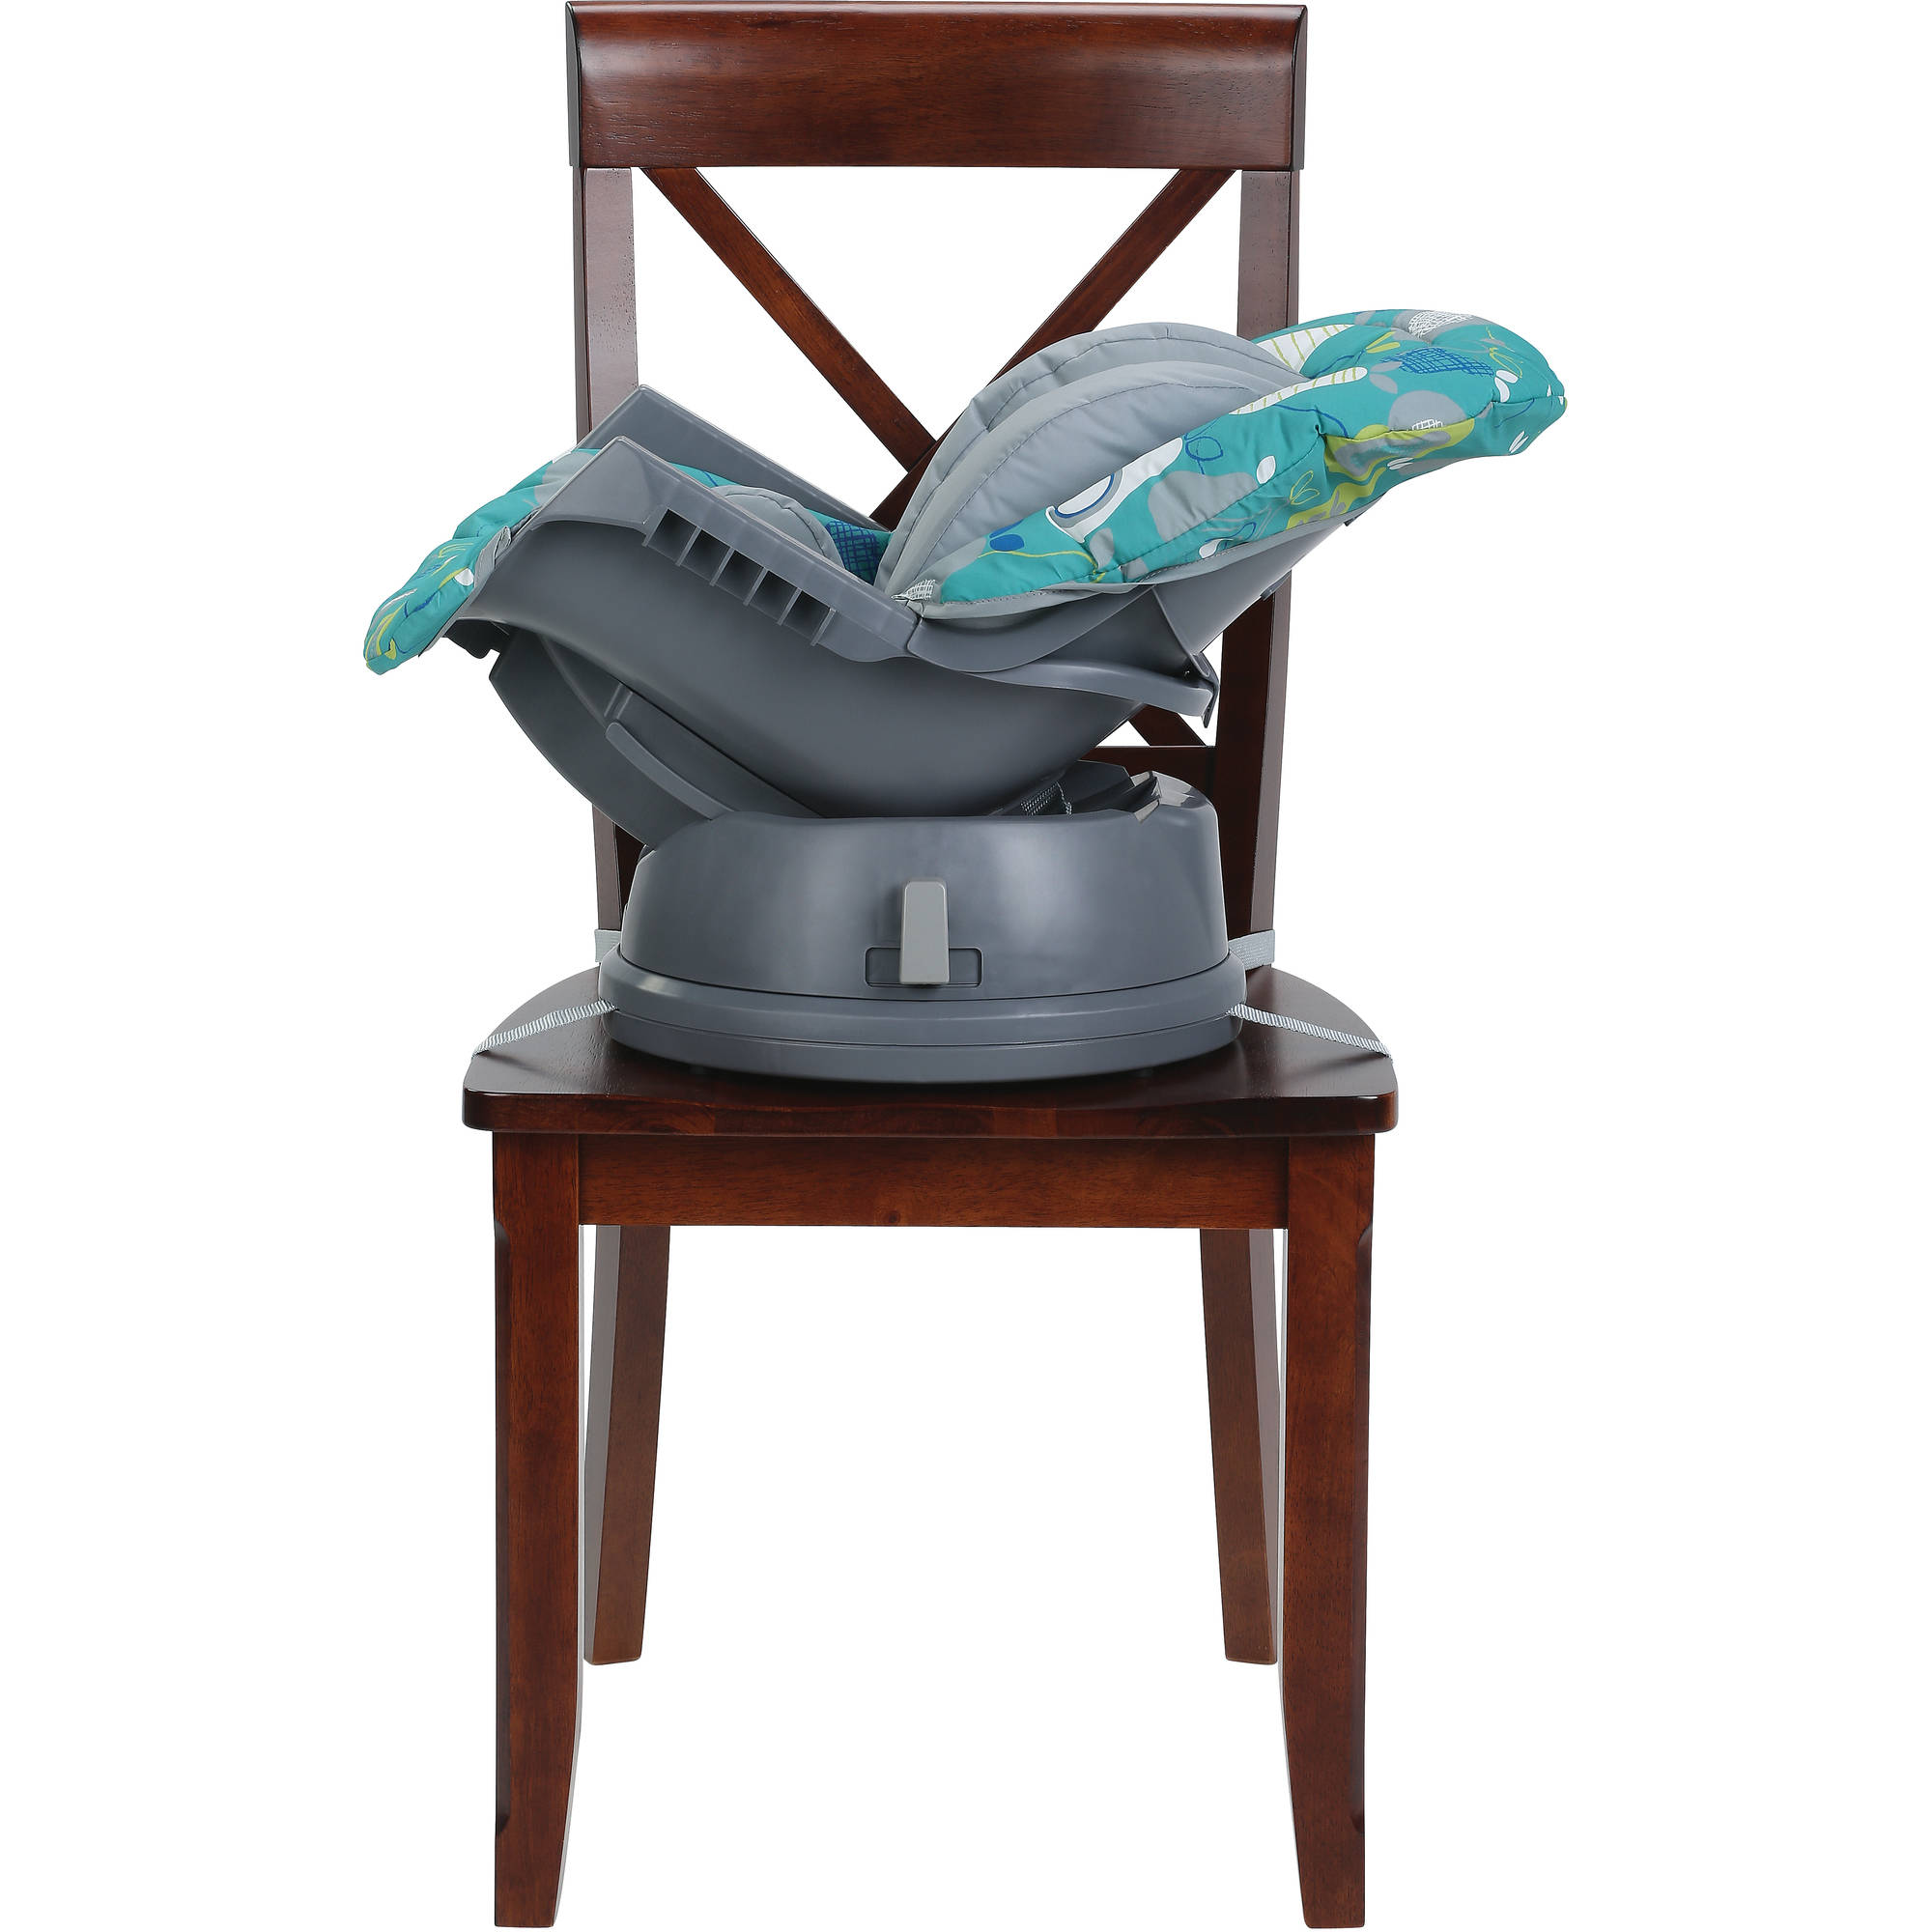 Graco SwiviSeat 3 In 1 High Chair Booster Seat, Tarte   Walmart.com